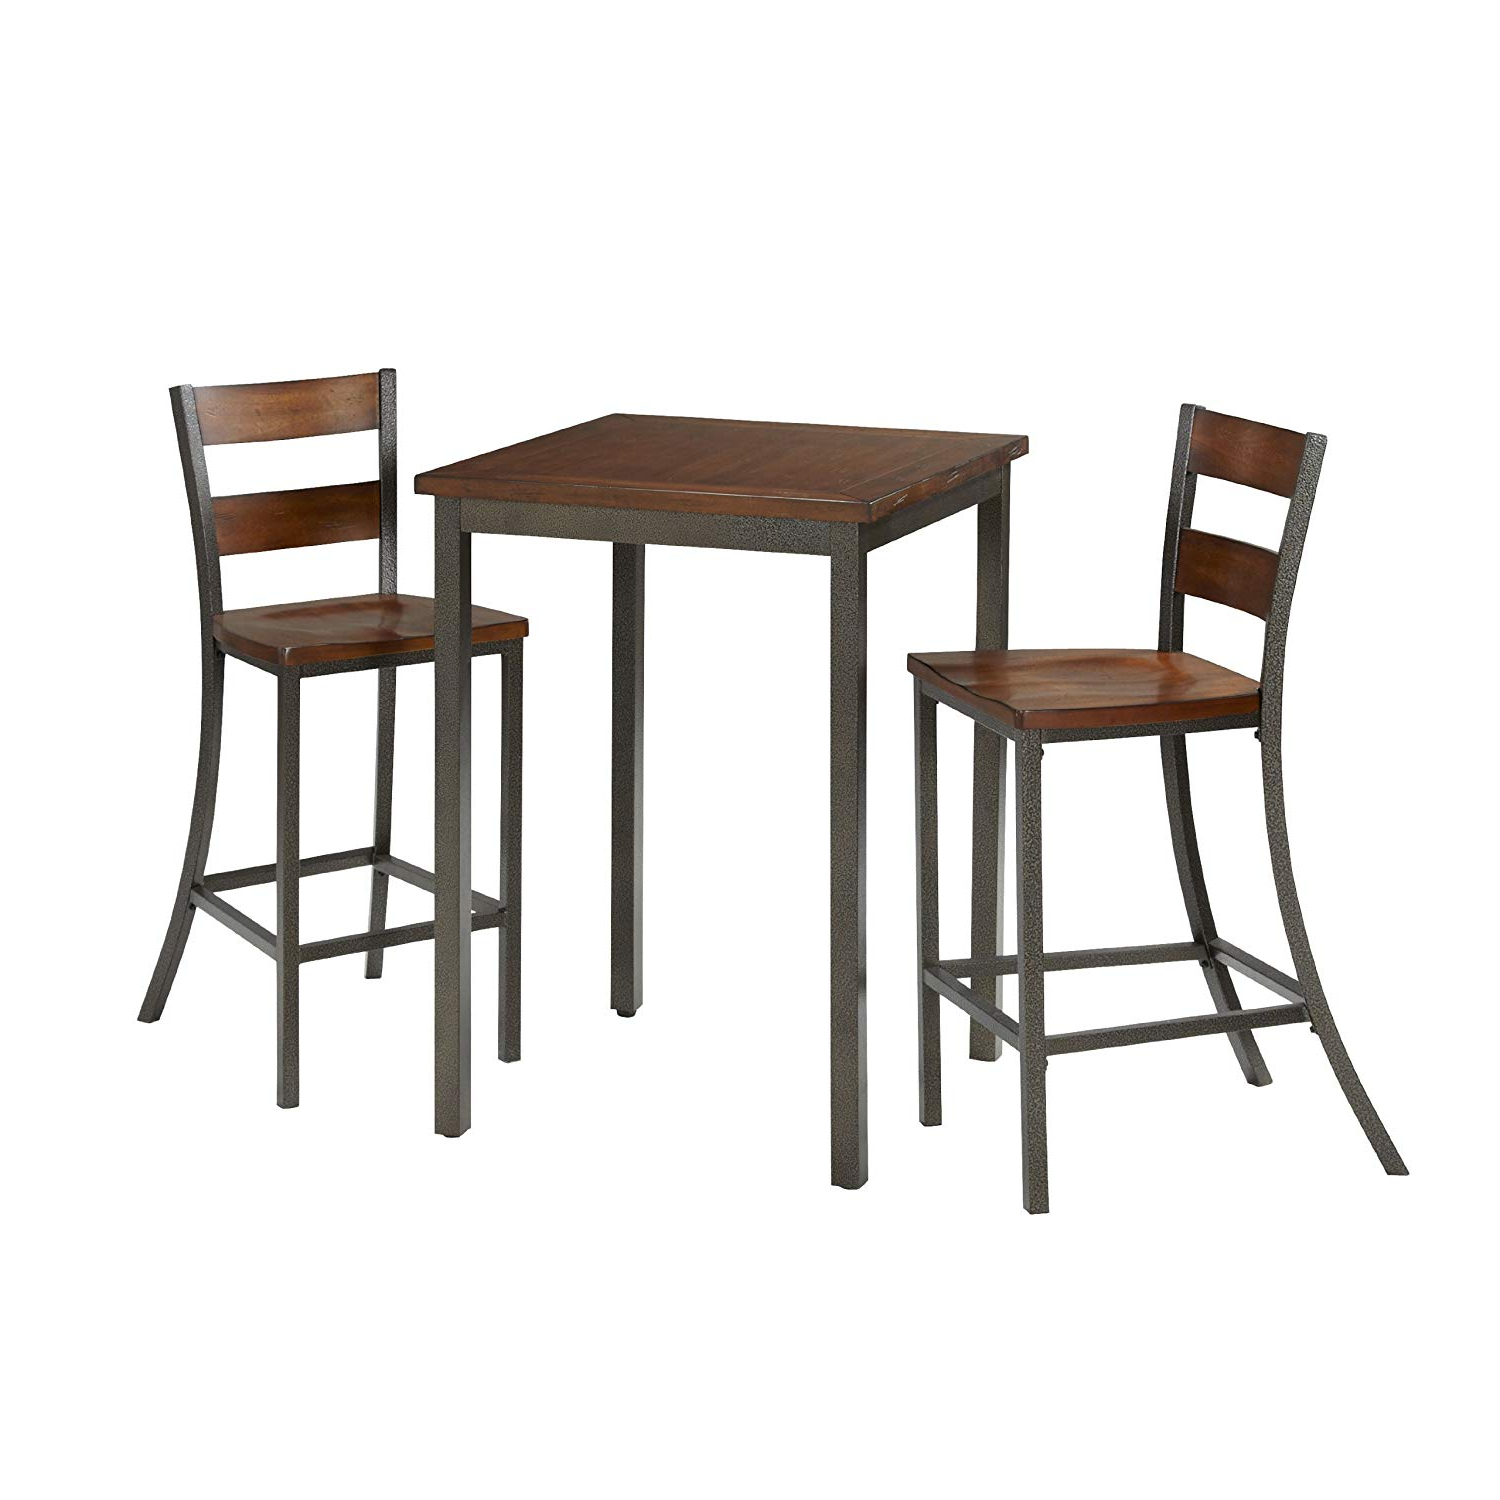 Partin 3 Piece Dining Sets With Regard To Famous Home Styles 5411 359 Cabin Creek 3 Piece Pub/bistro Table And Chairs Set (View 5 of 20)